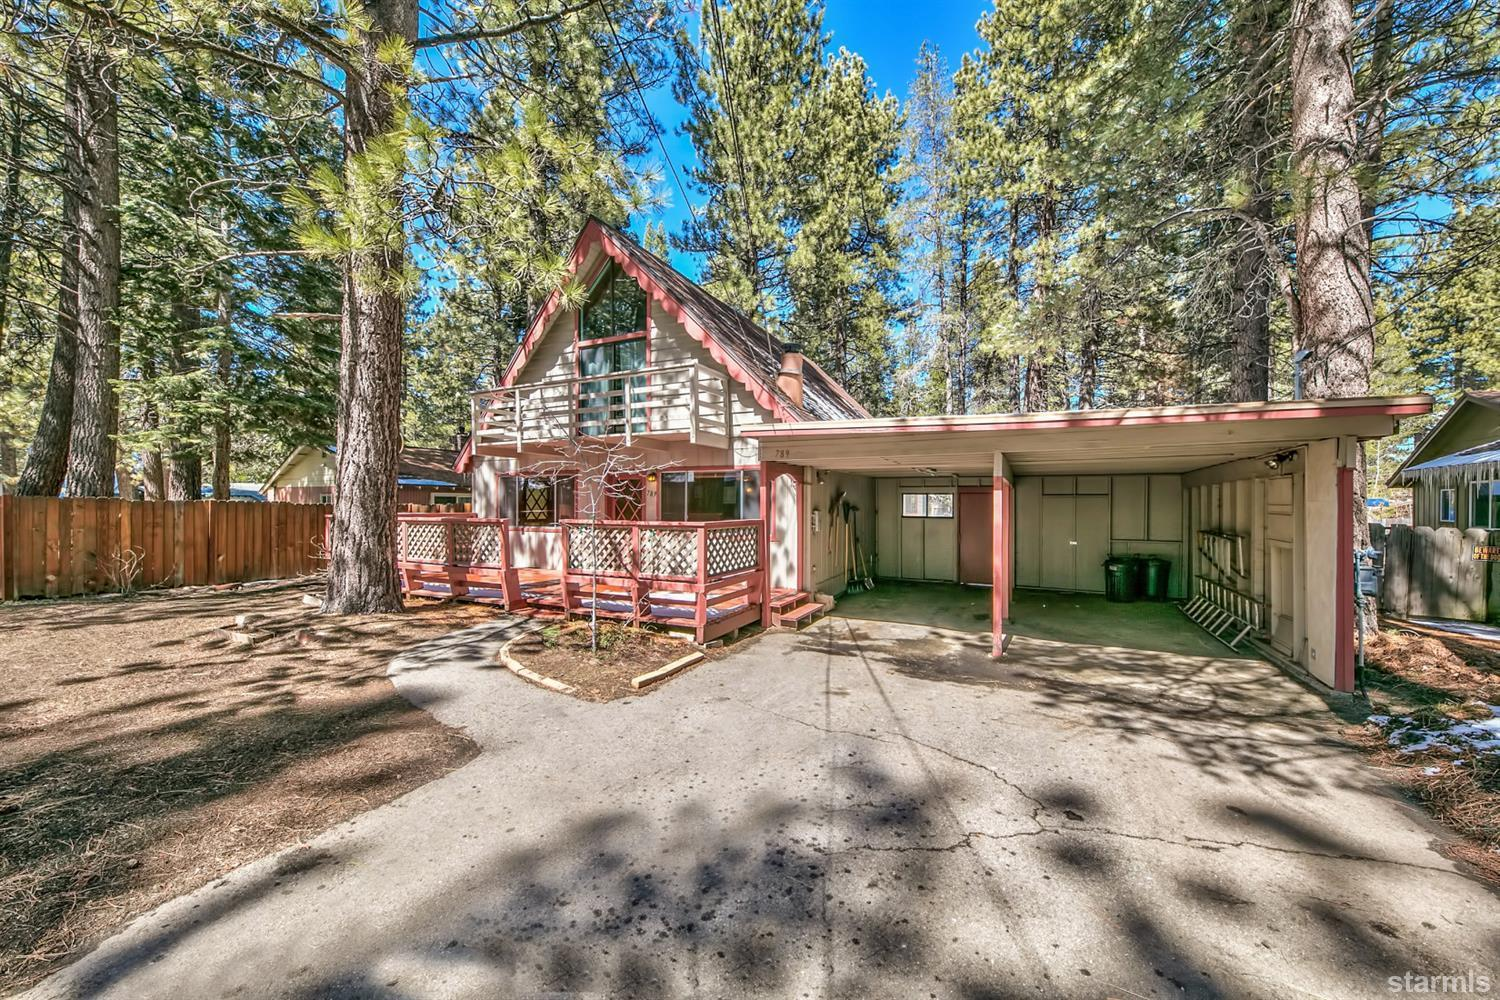 tahoe rentals south lake sale in log with campgrounds cabins for cabin